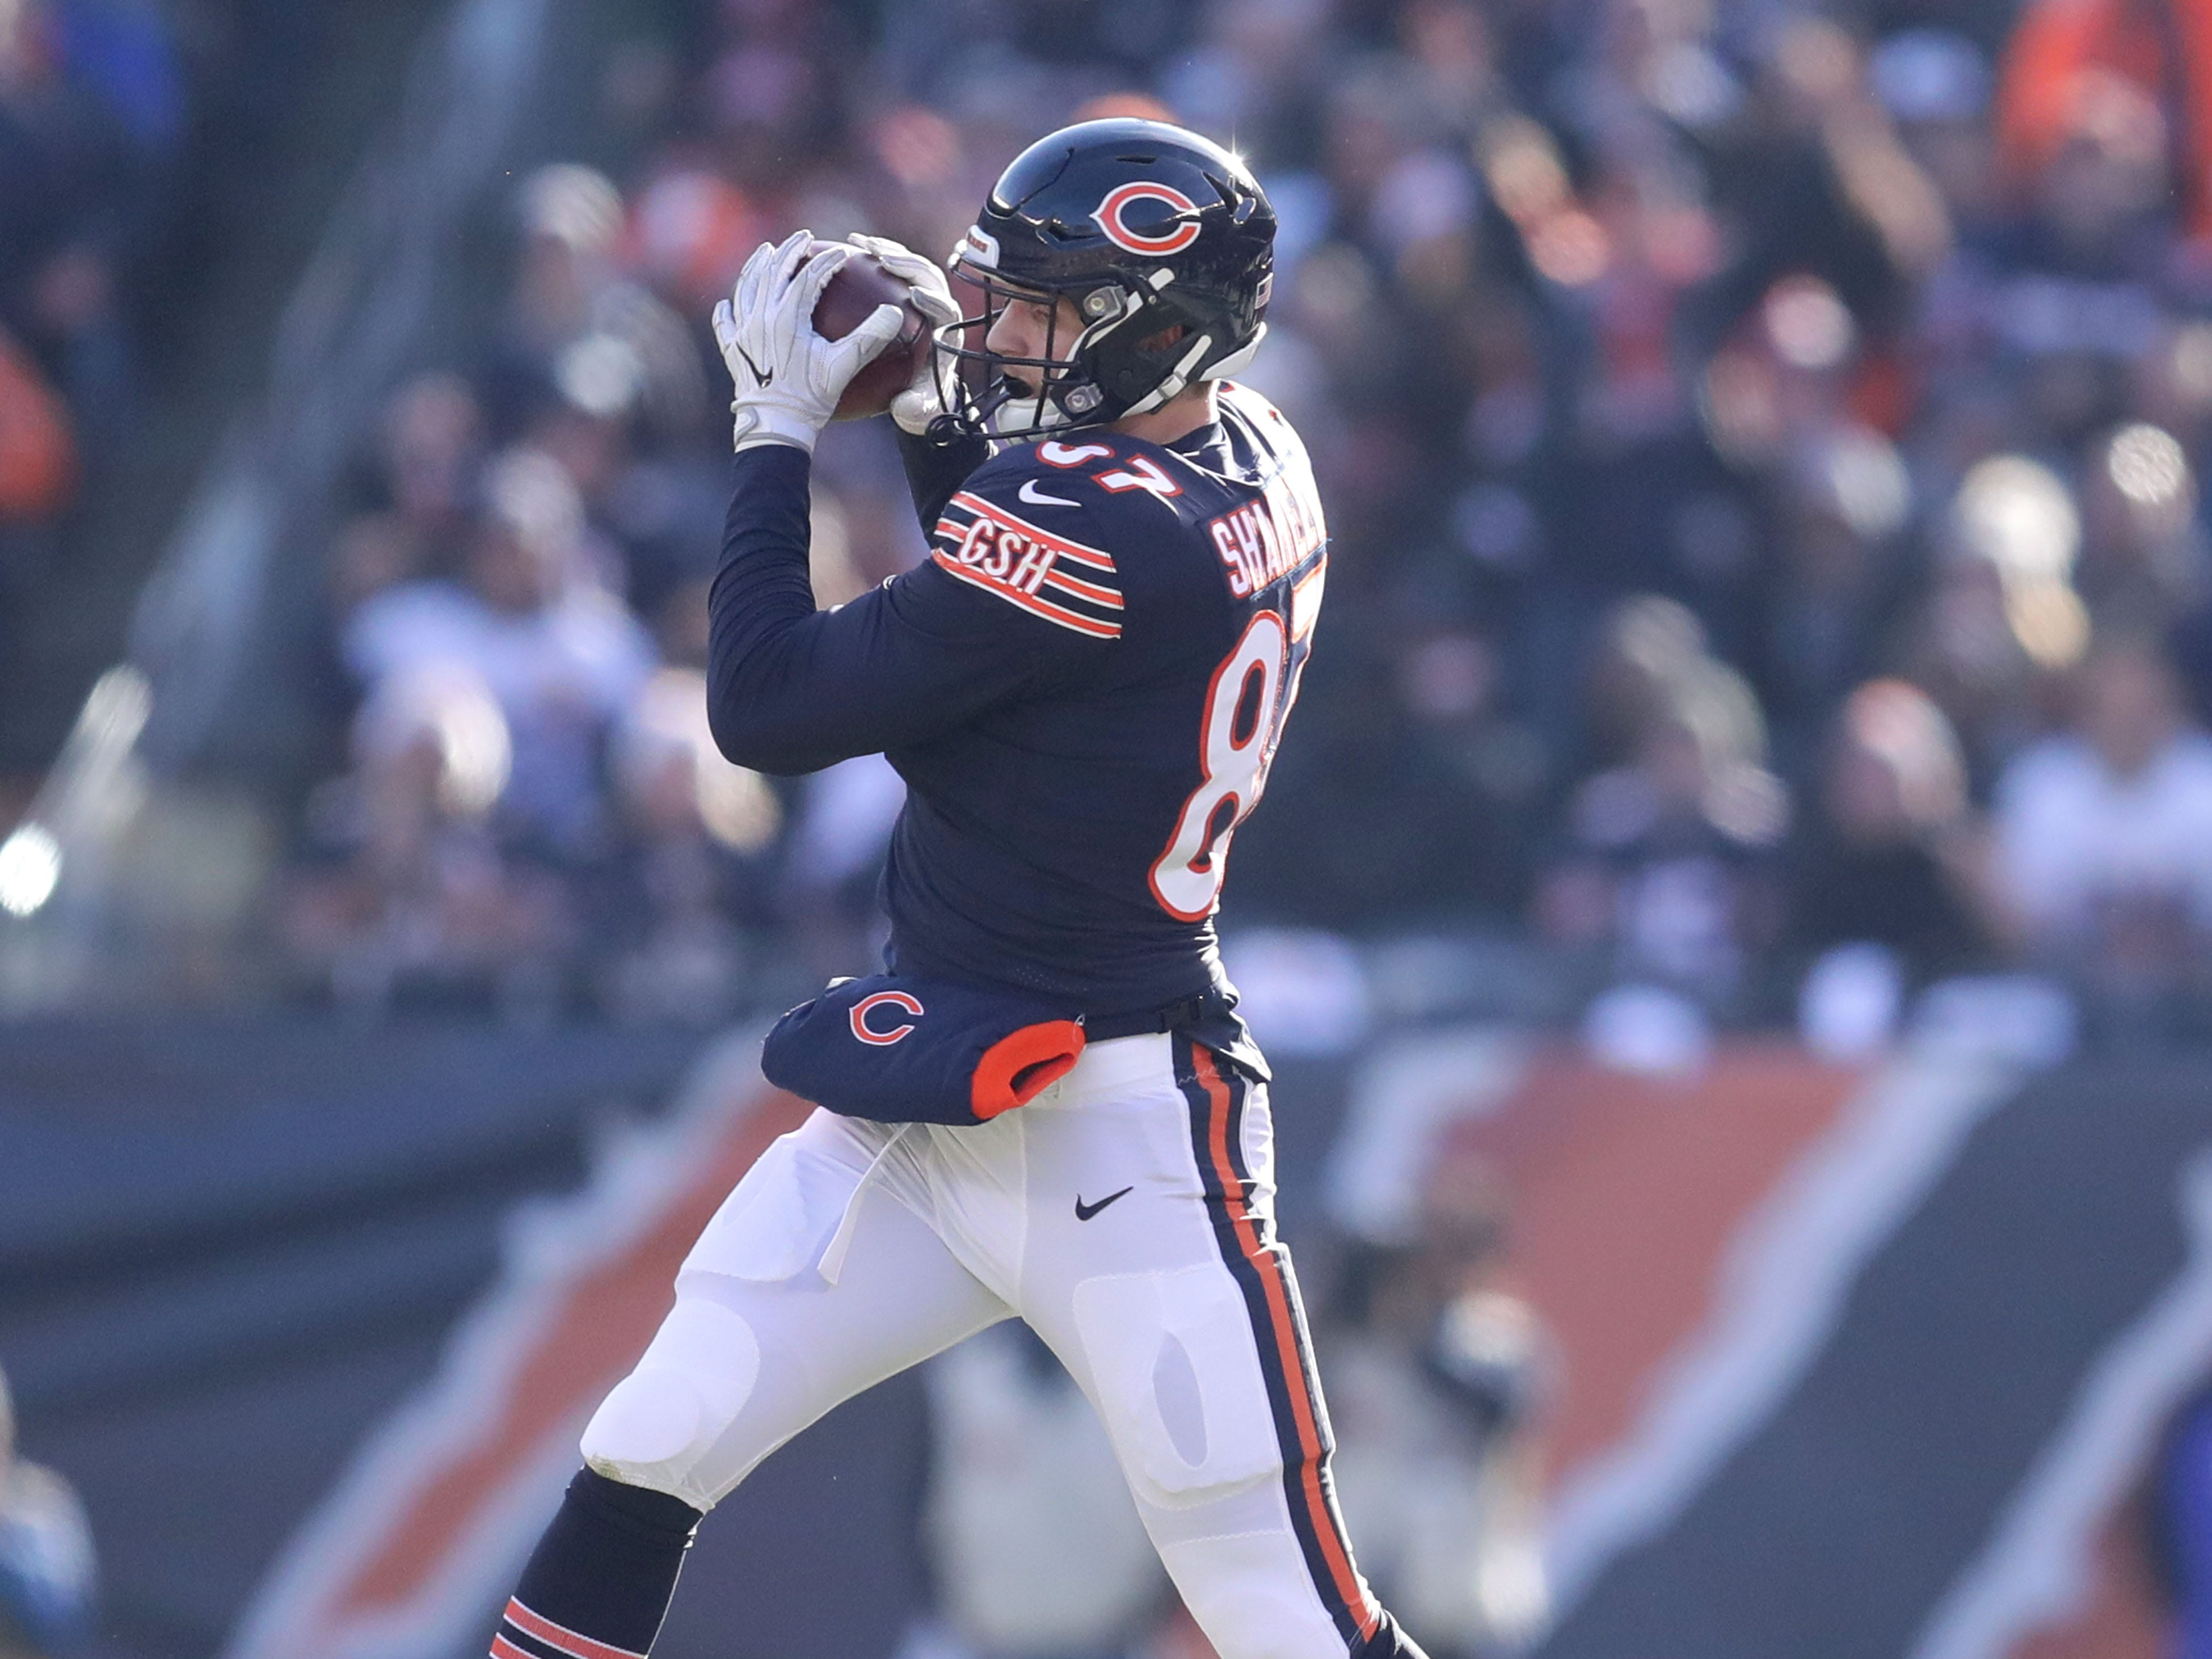 Chicago Bears' Adam Shaheen takes a catch during the 1st half of the Green Bay Packers game against the Chicago Bears at Soldier Field Sunday, Dec. 16, 2018, in Chicago. Photo by Mike De Sisti / The Milwaukee Journal Sentinel